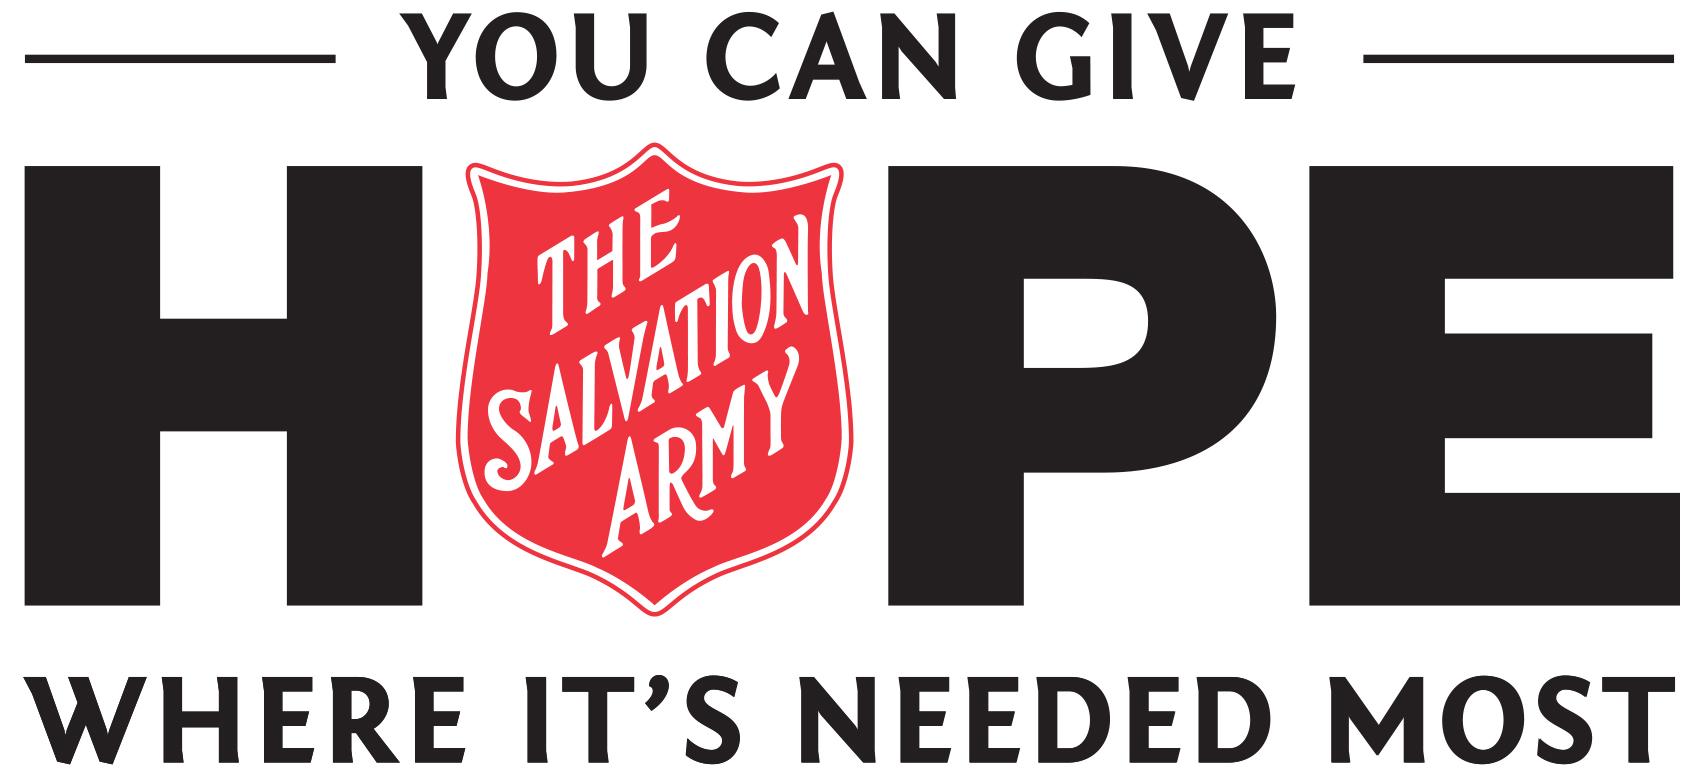 salvation army christmas appeal 2015 vati project